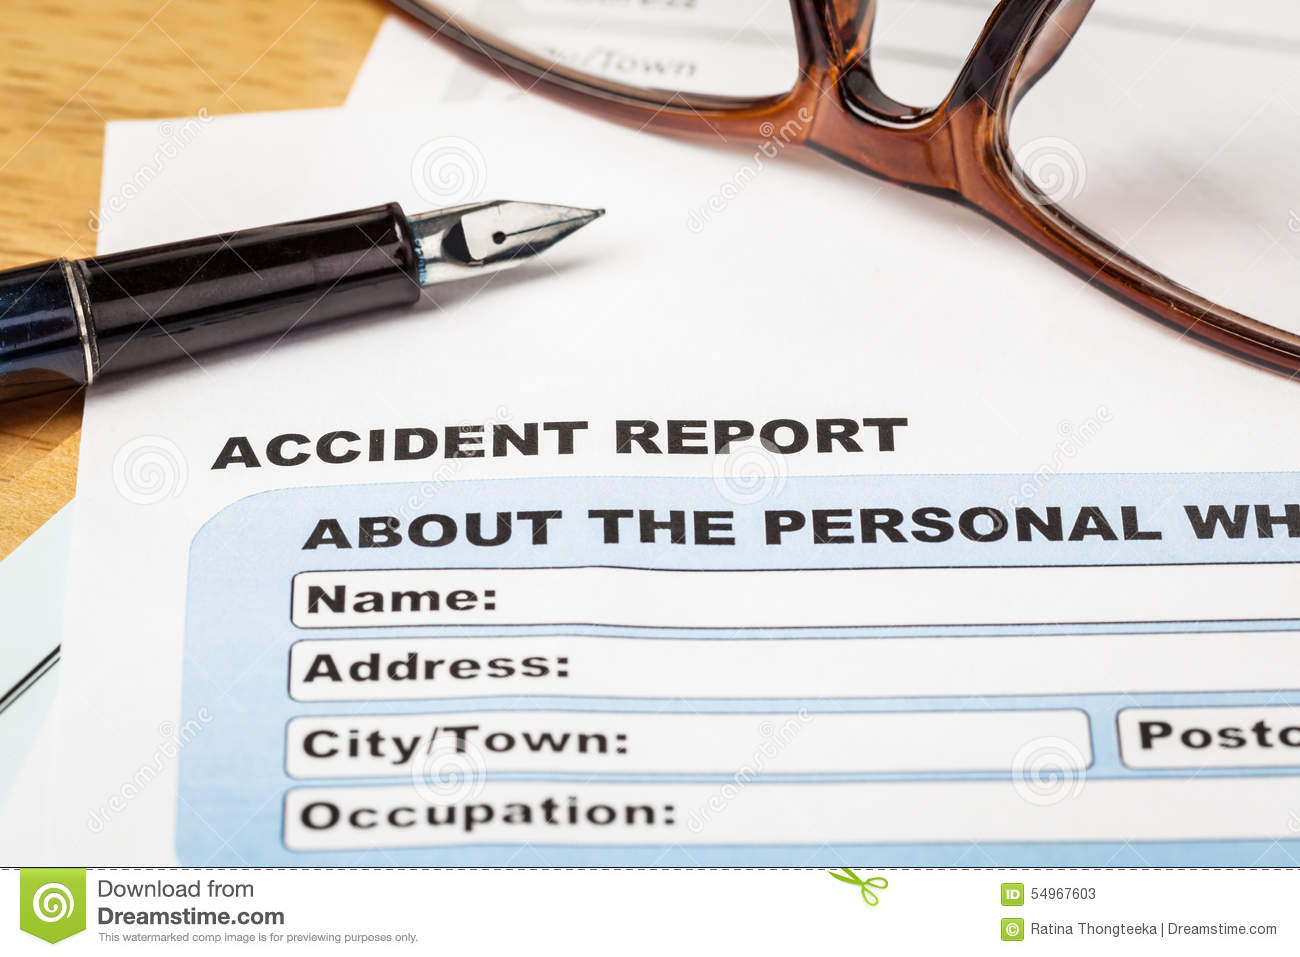 accident report application form and pen on brown envelope and e accident report application form and pen on brown envelope and e